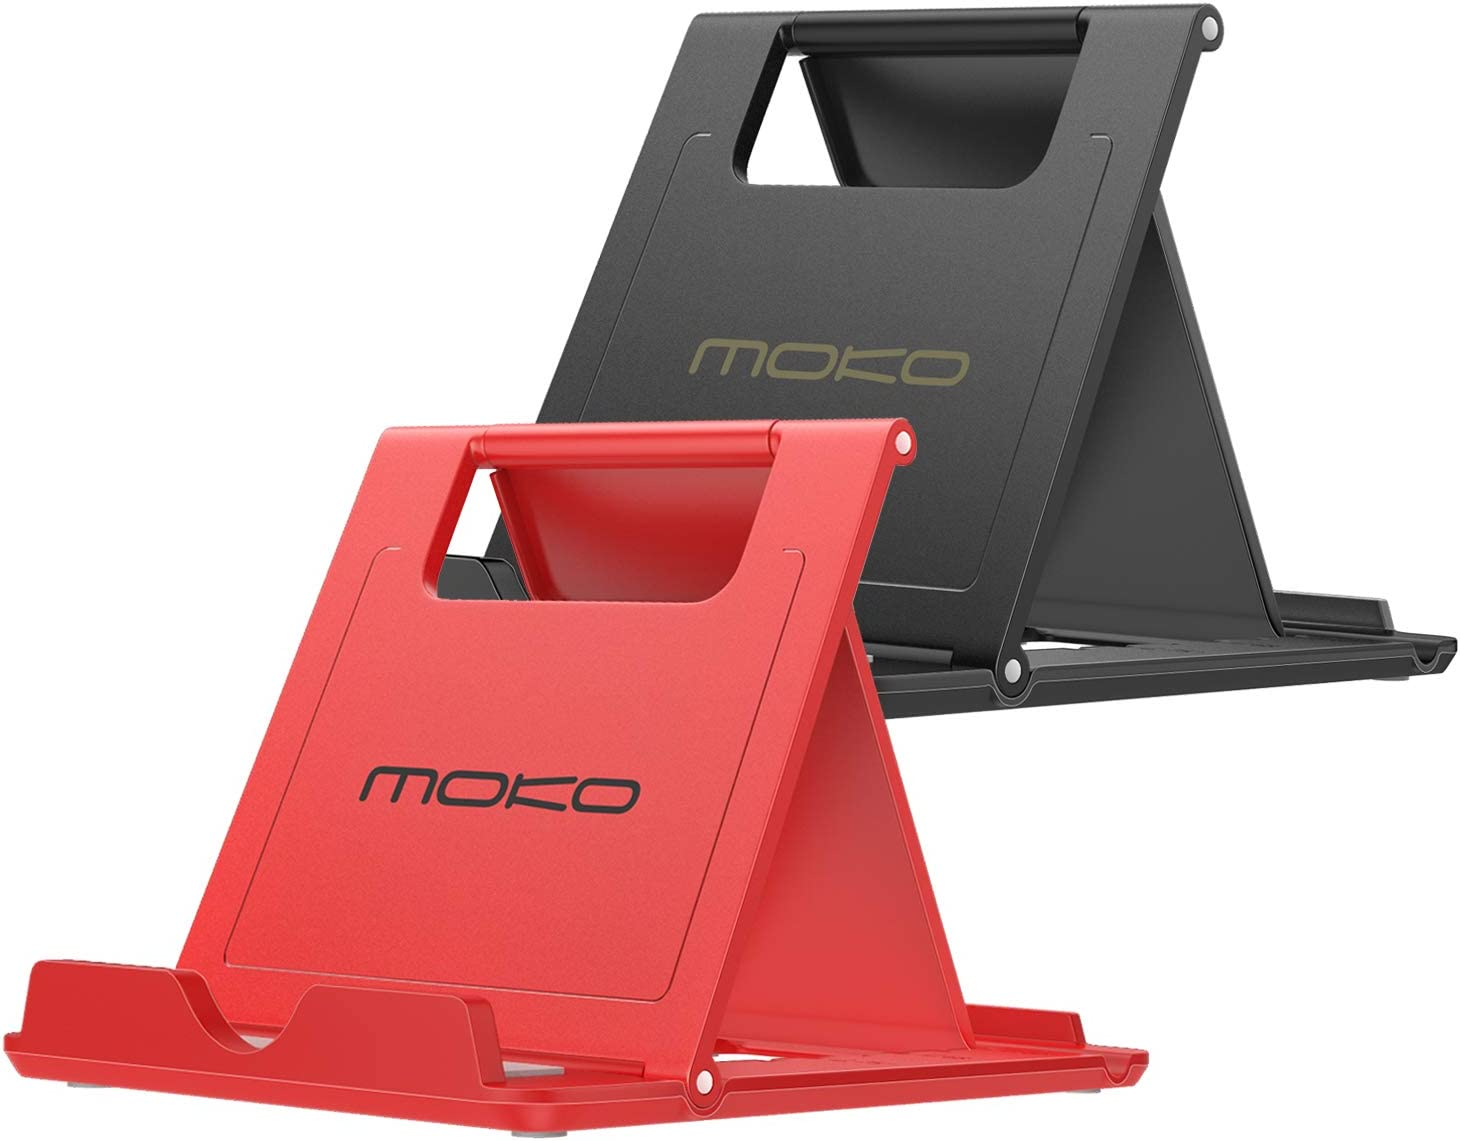 """MoKo [2 Pack] Phone/Tablet Stand, Foldable Holder Fit with iPhone 11 Pro Max/11 Pro/11, iPhone Xs/Xs Max/Xr/X, iPhone SE 2020, iPad Pro 11 2020/10.2/Air 3/Mini 5, Galaxy S20 6.2"""", Black & Red"""